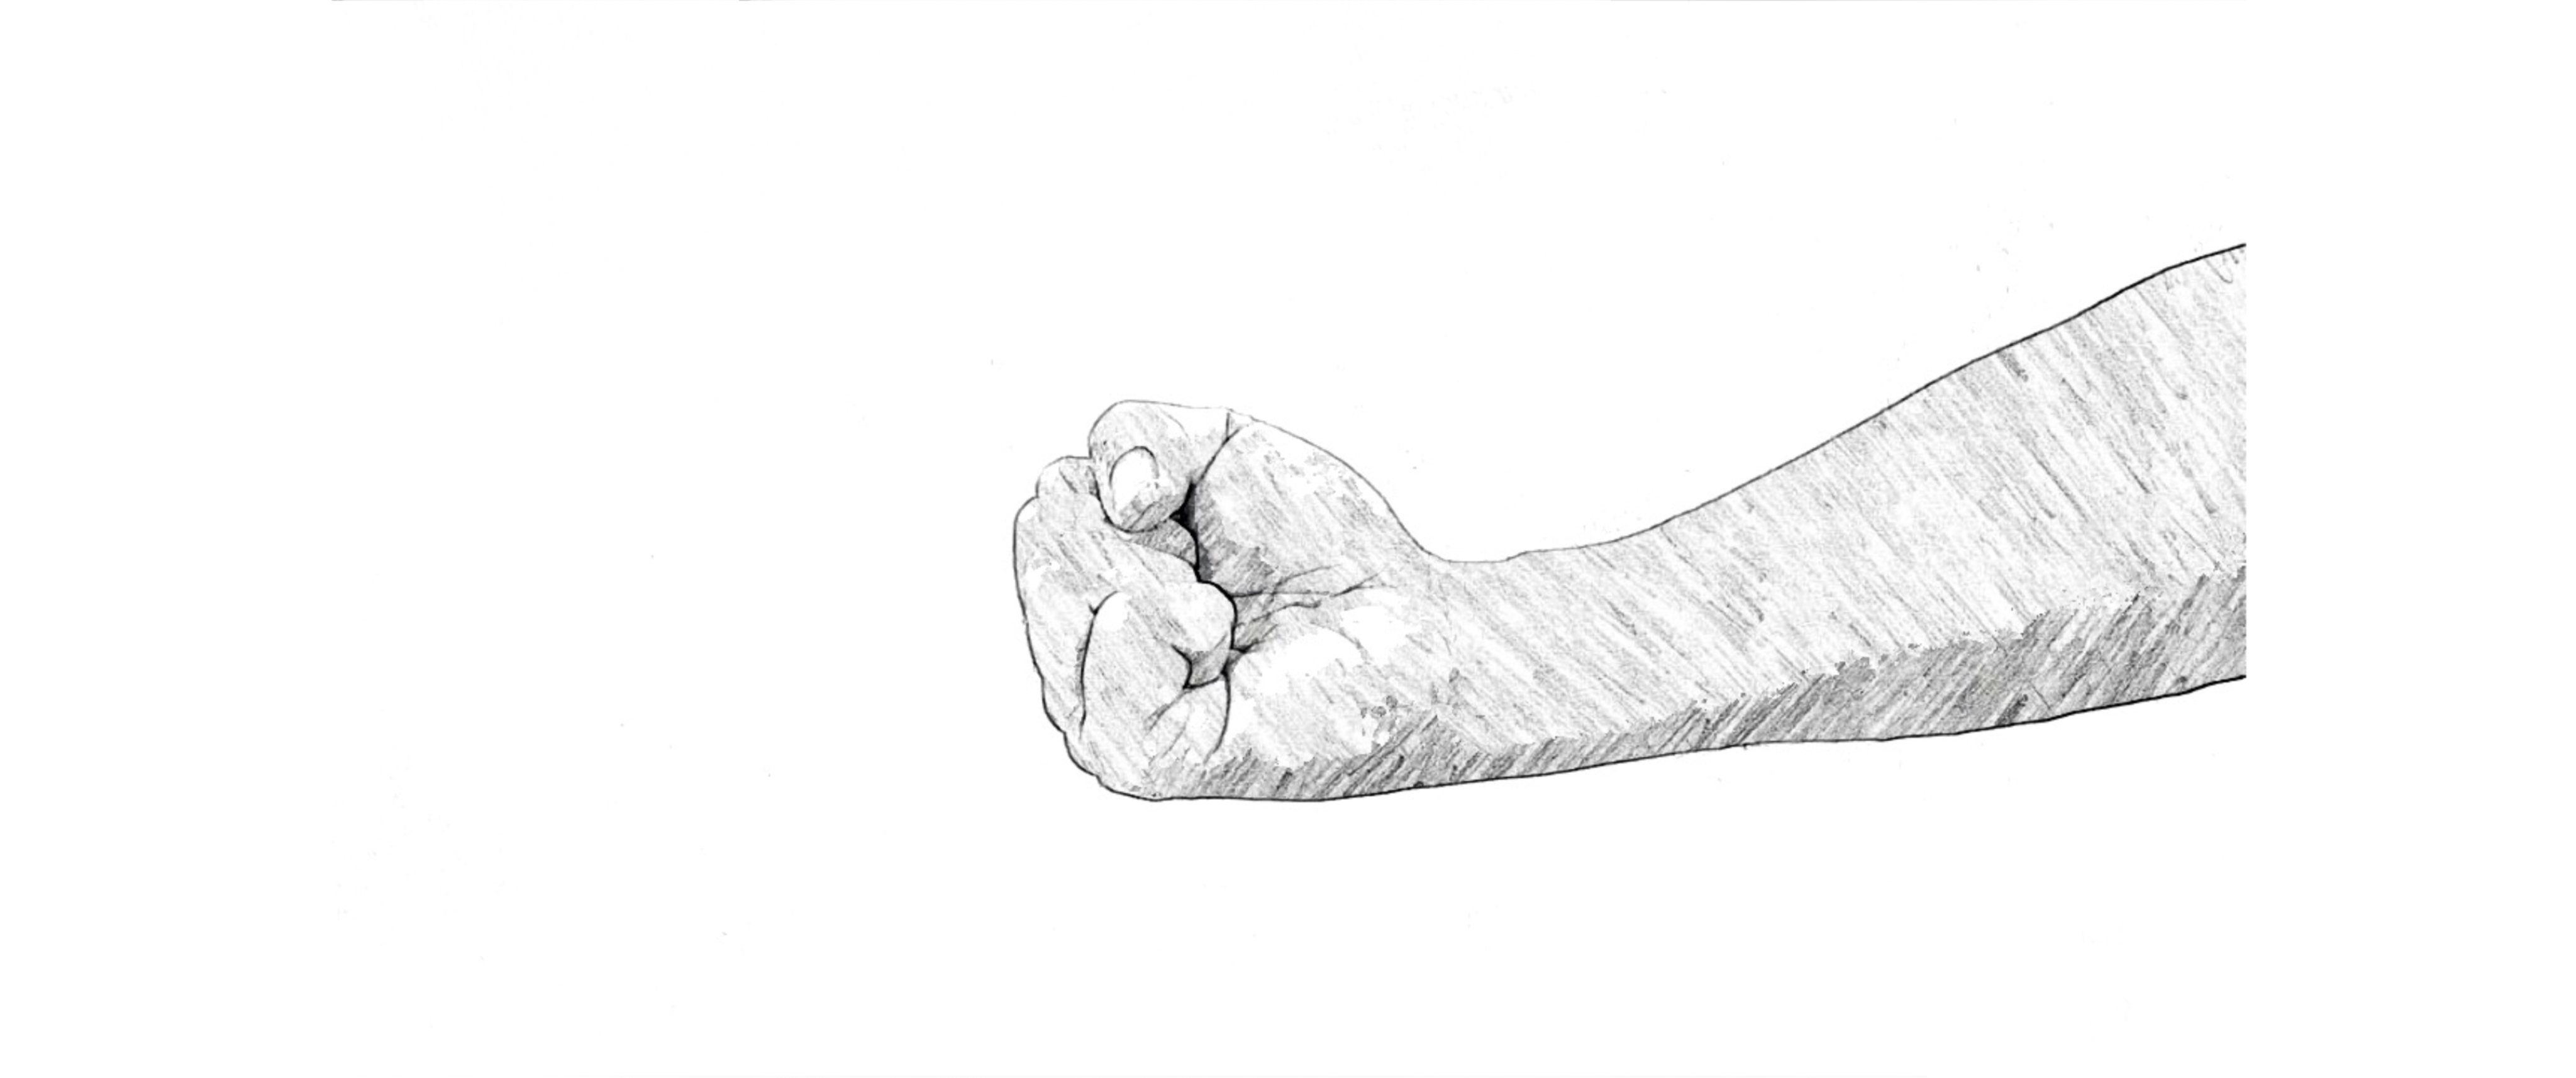 4096x1714 New Practical Tip Added How To Clench A Fist A Practical Guide